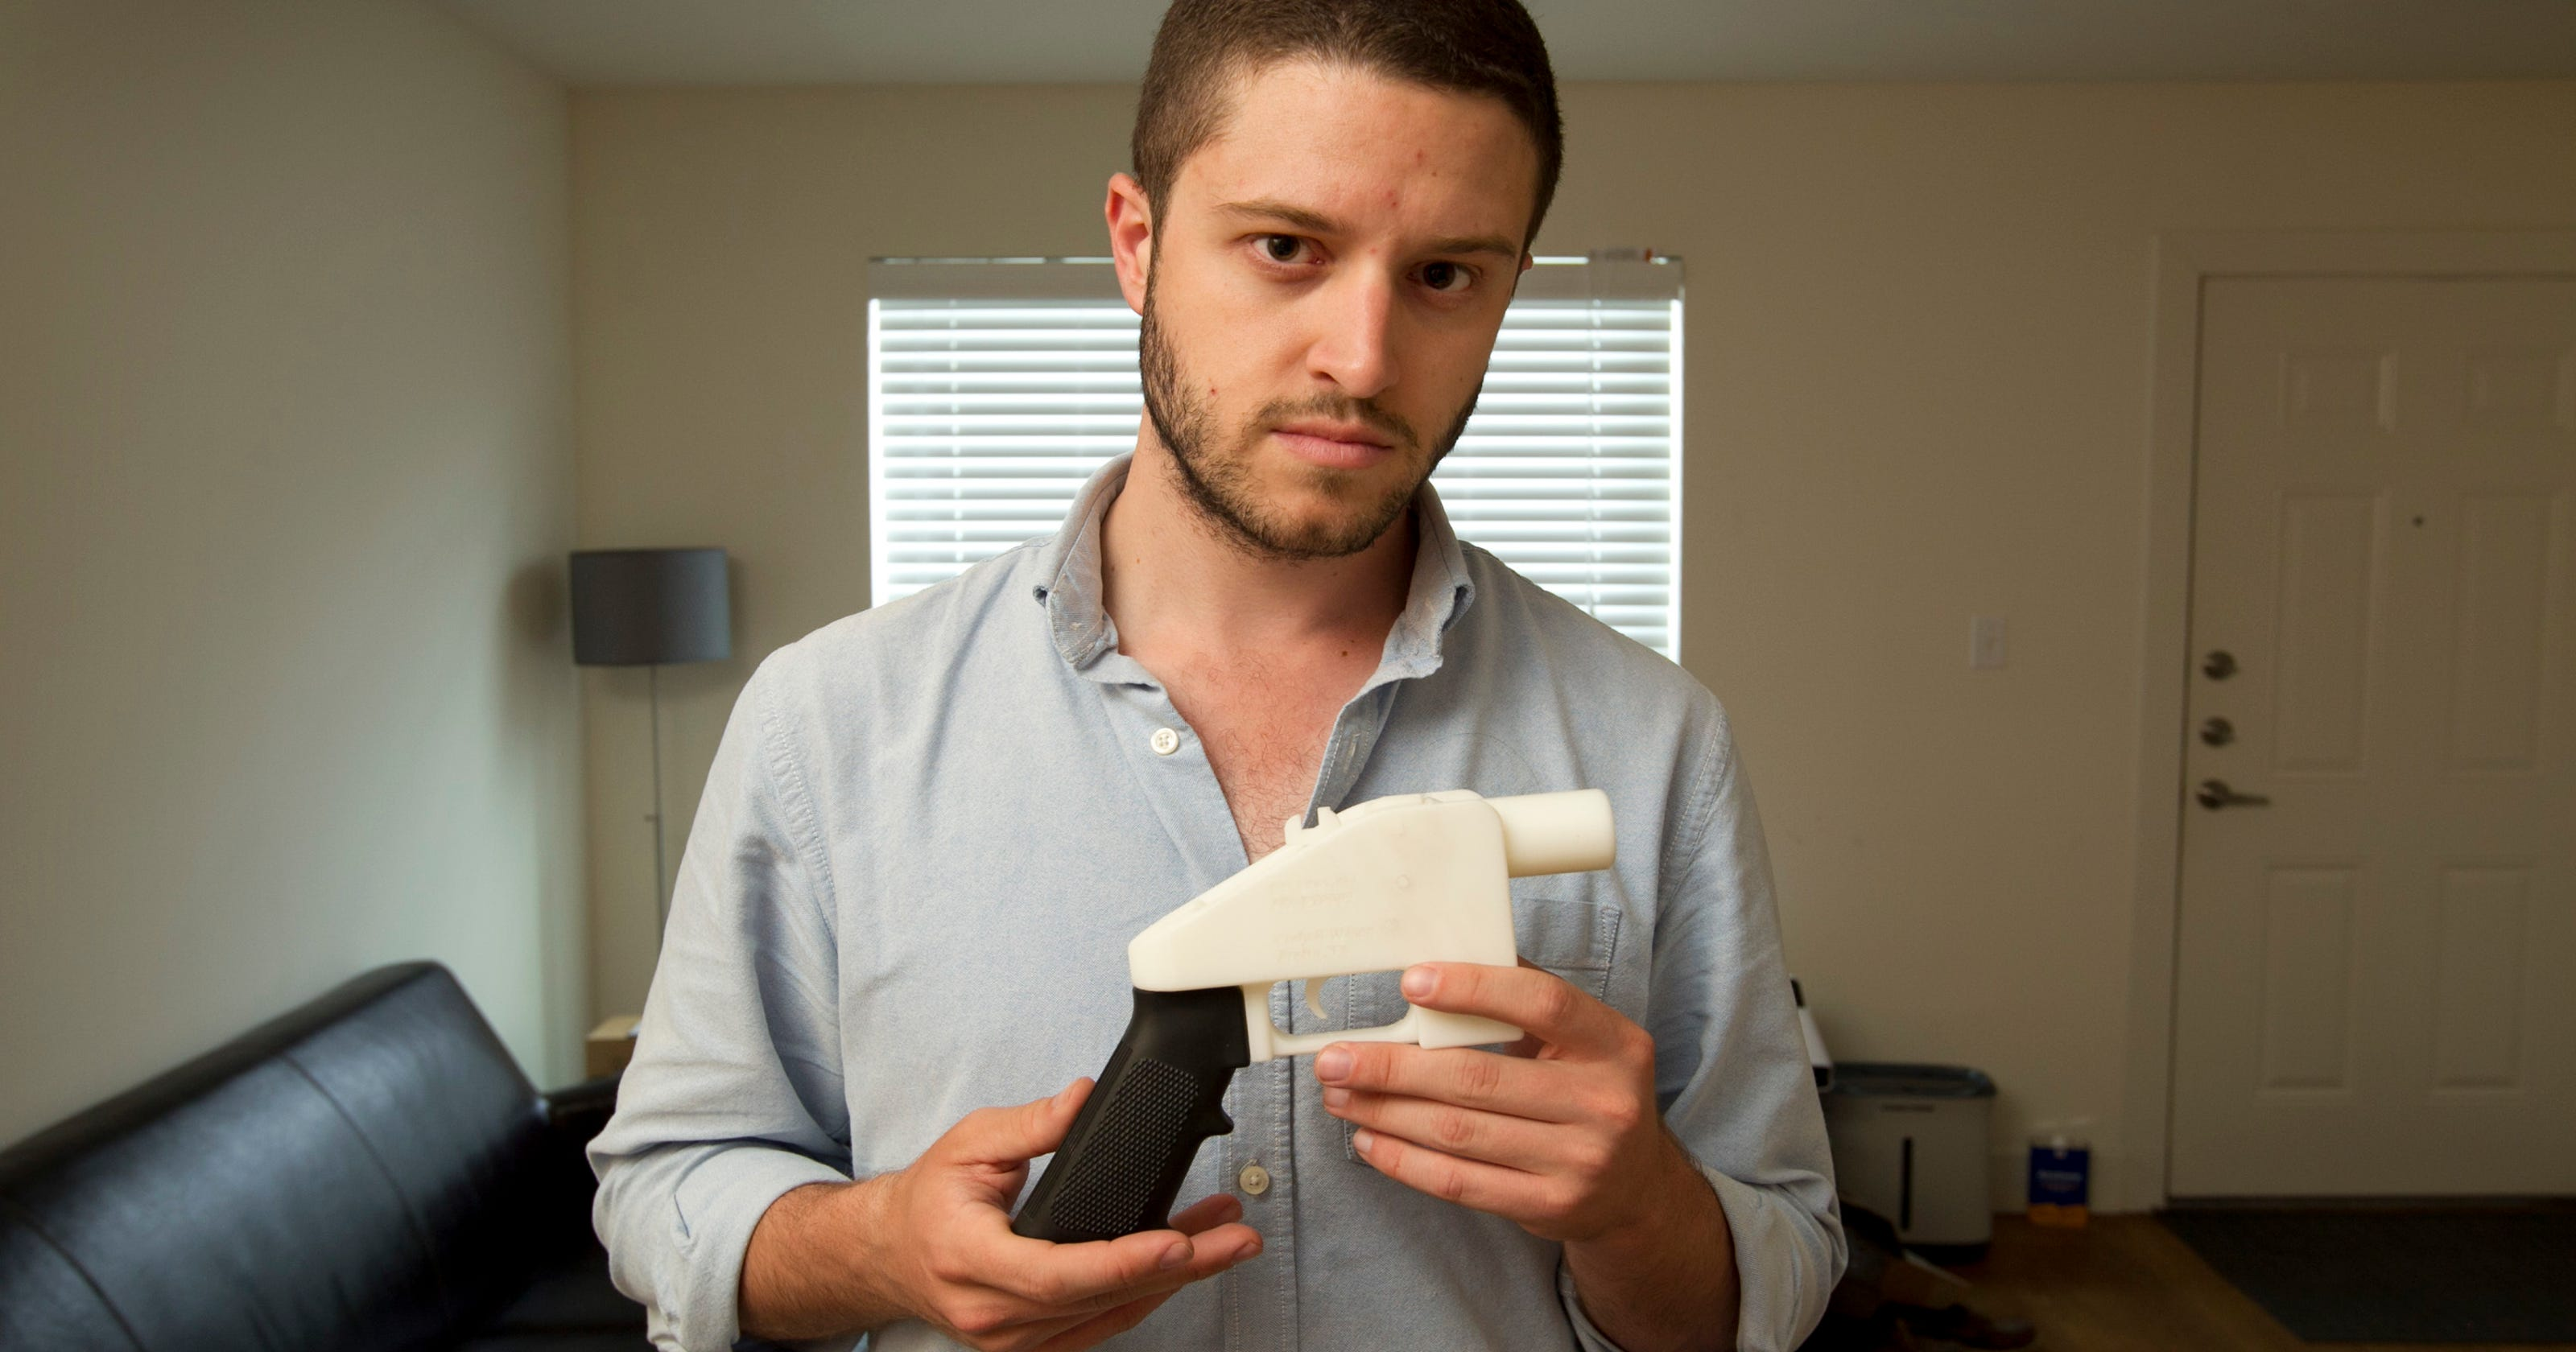 3d printed guns courts ban release of gun blueprints malvernweather Gallery